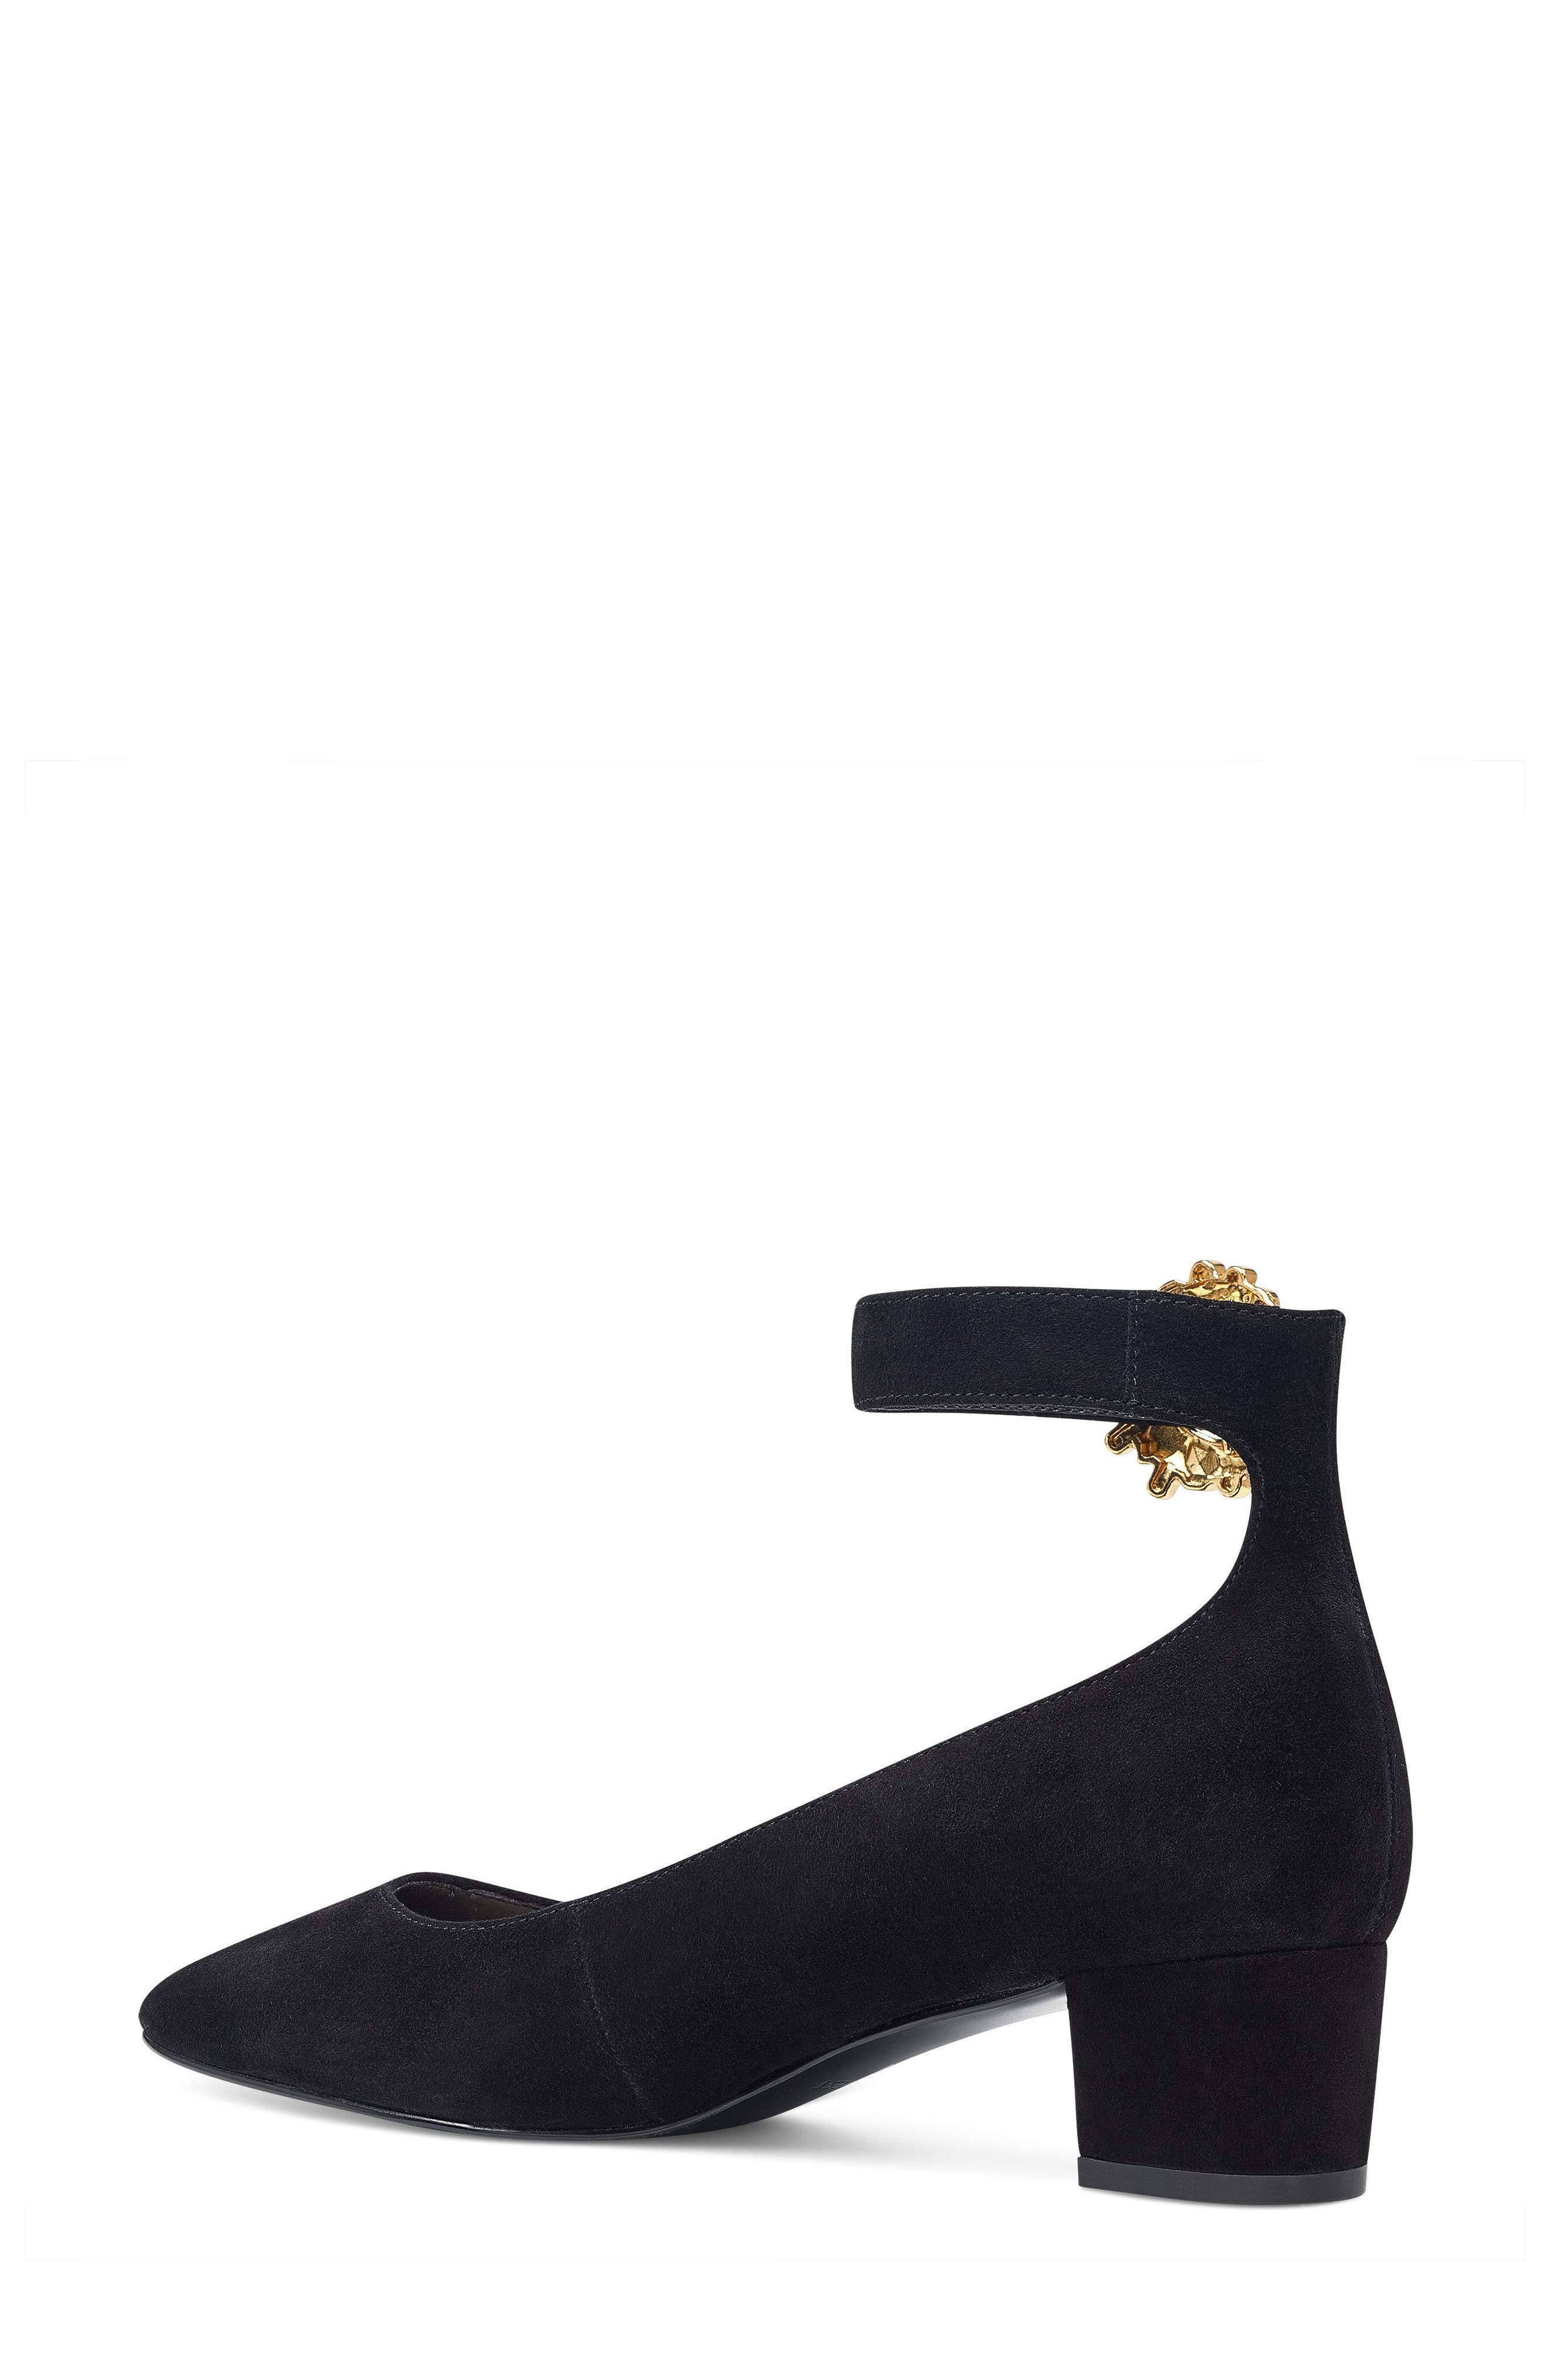 Bartly Ankle Strap Pump,                             Alternate thumbnail 2, color,                             001